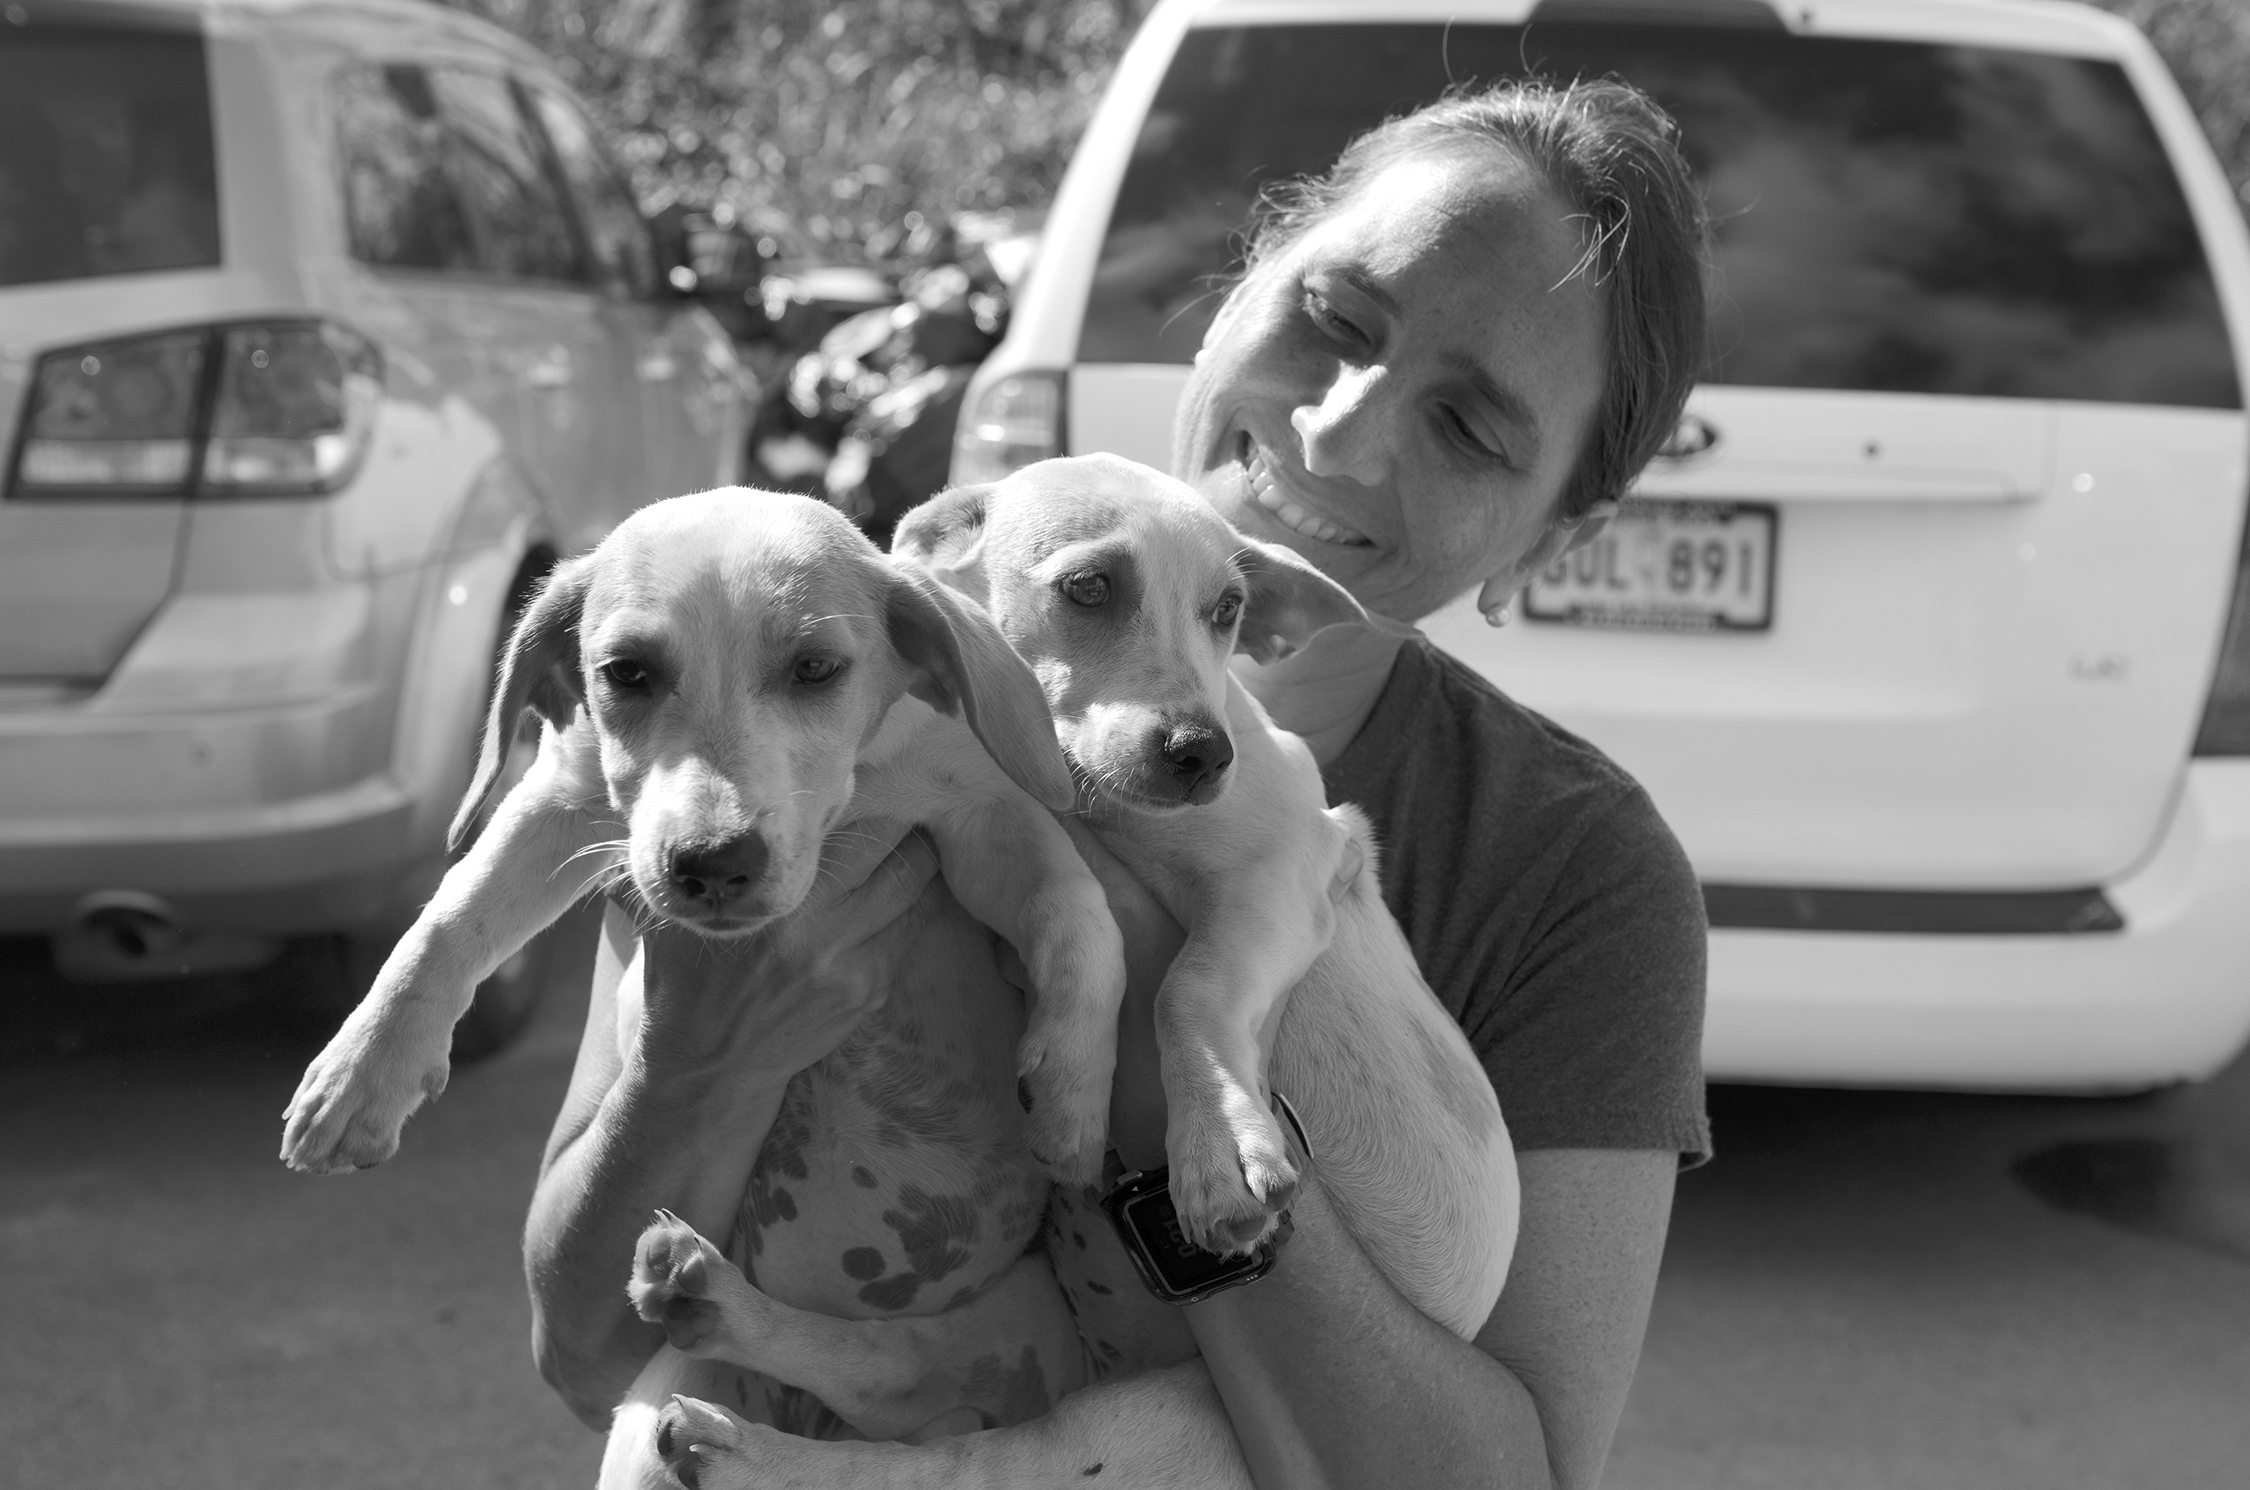 ACTIVITIES - The National Centers for Environmental Information recorded 16 major environmental disasters in 2017. Over the past two years I Love My Dog So Much, LLC has been thankful to raise and deploy over $300,000 in response to natural disasters in Texas, Louisiana and Puerto Rico. These funds were used to ensure that dogs and other pets impacted by these natural disasters had access to food, shelter and medication, as well as providing temporary foster or permanent adoption services for animals in need.Below are images from our past efforts.Click to Learn More